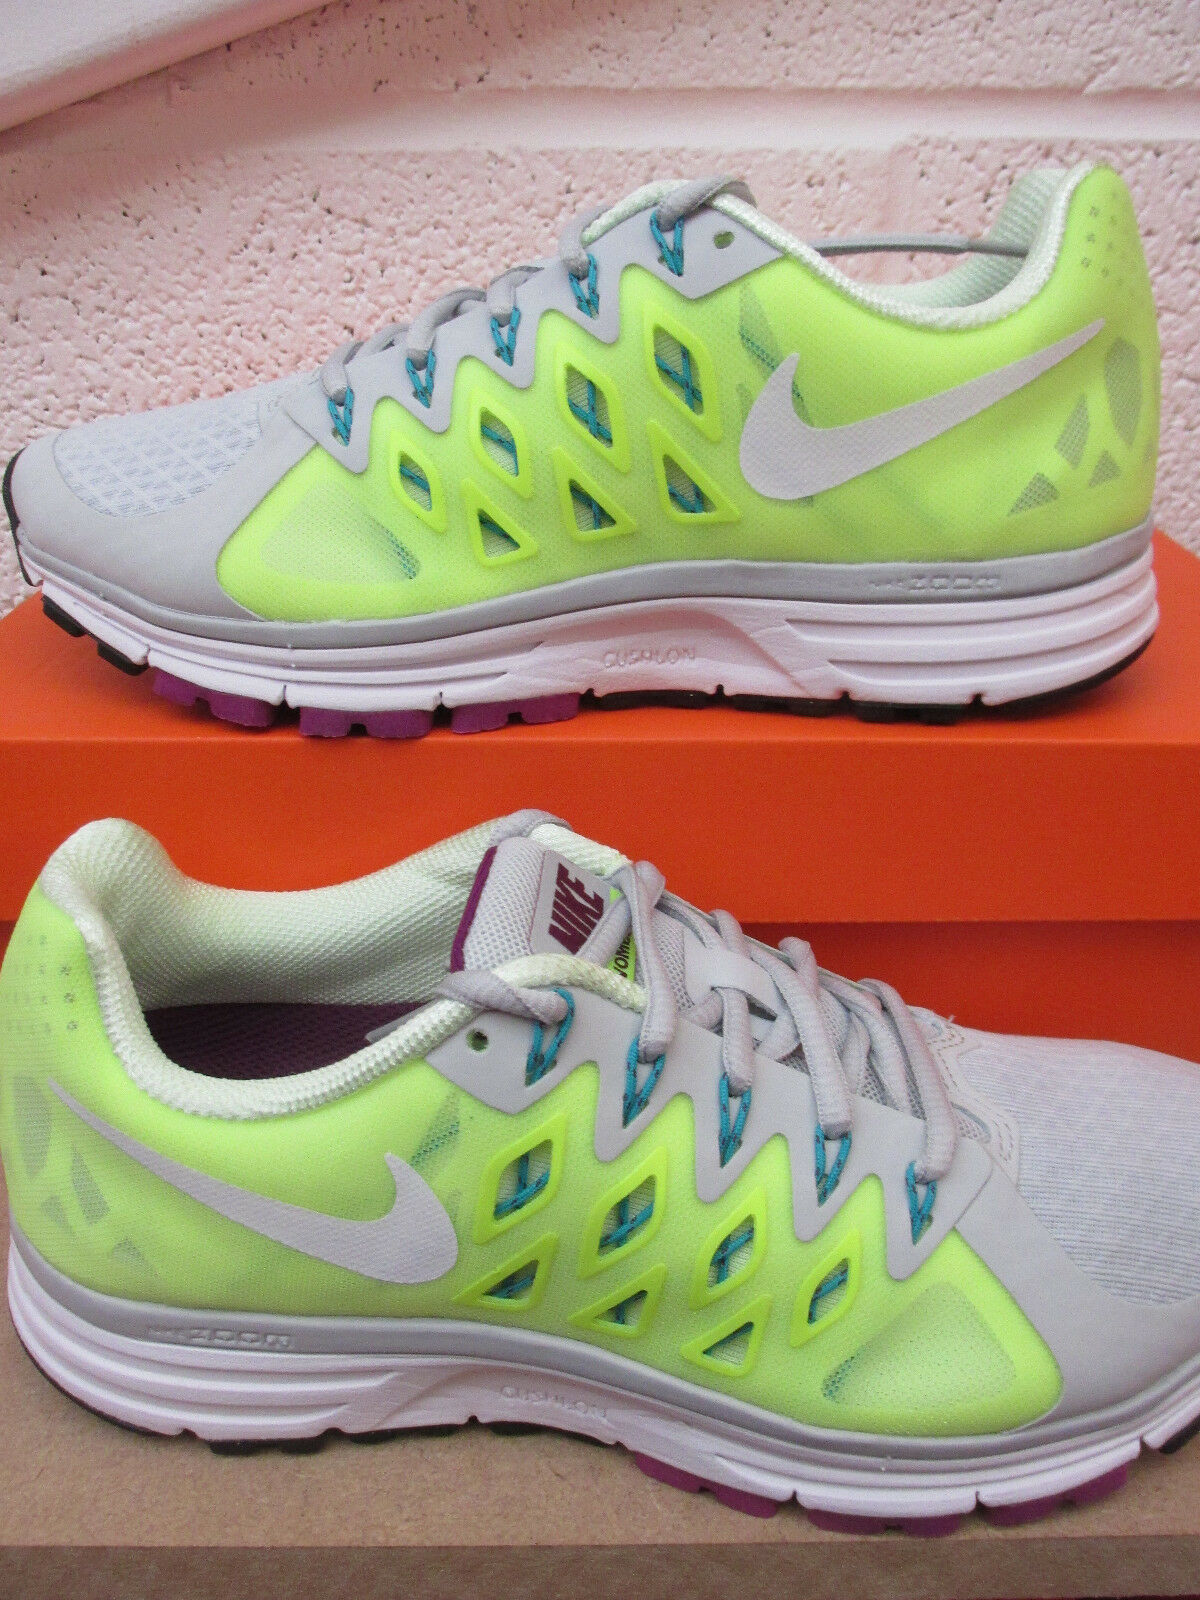 nike womens zoom vomero 9 running trainers 642196 007 sneakers shoes